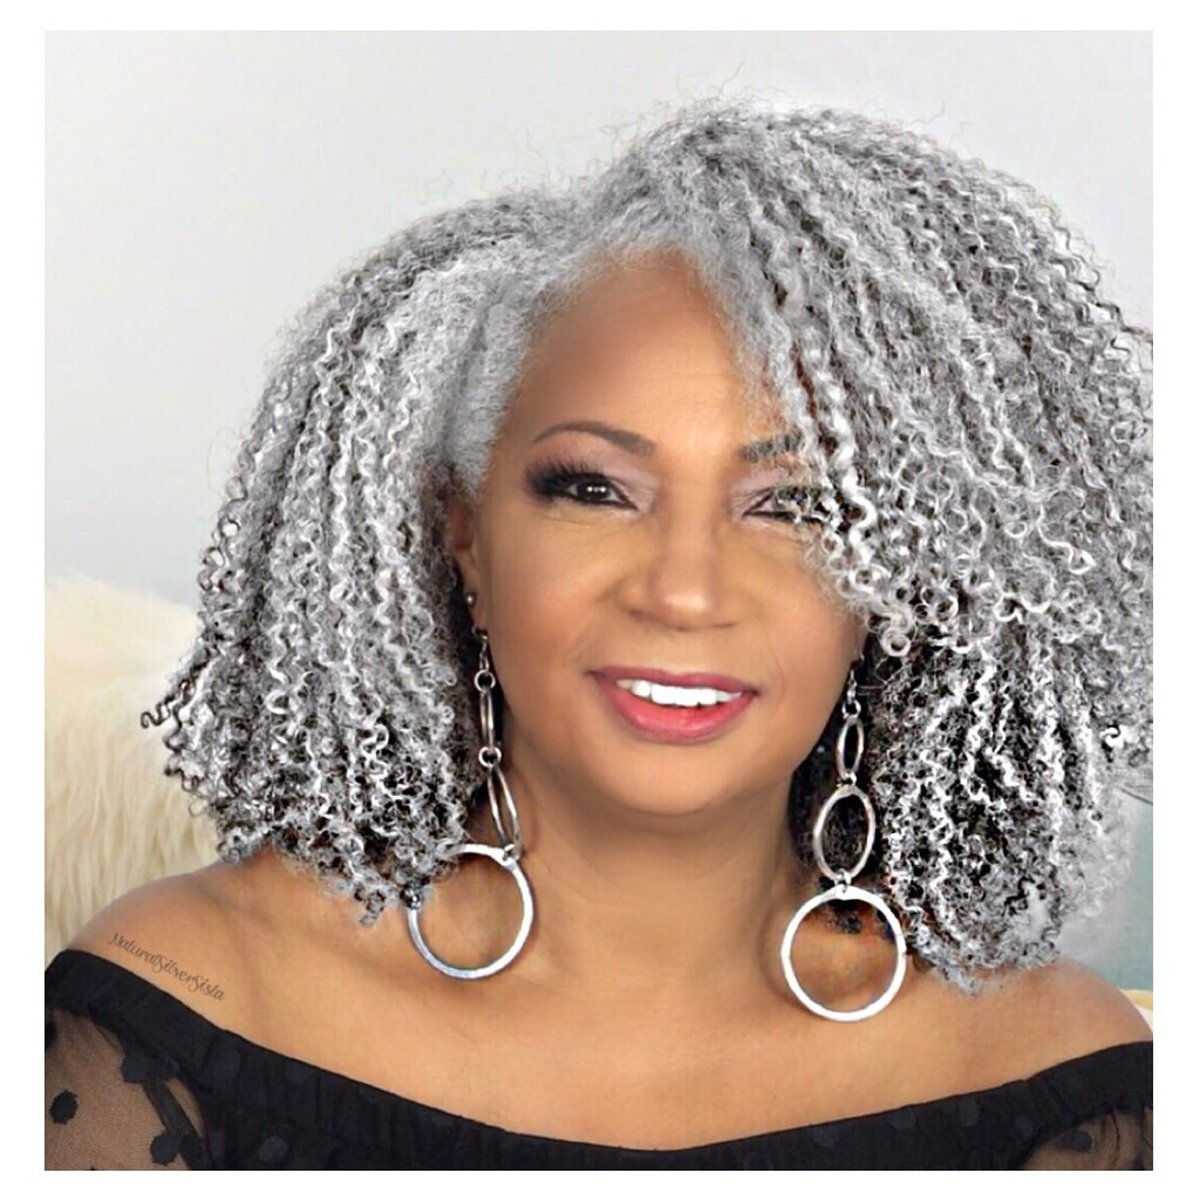 Gray Hair Is to Be Treasured According to the Bible